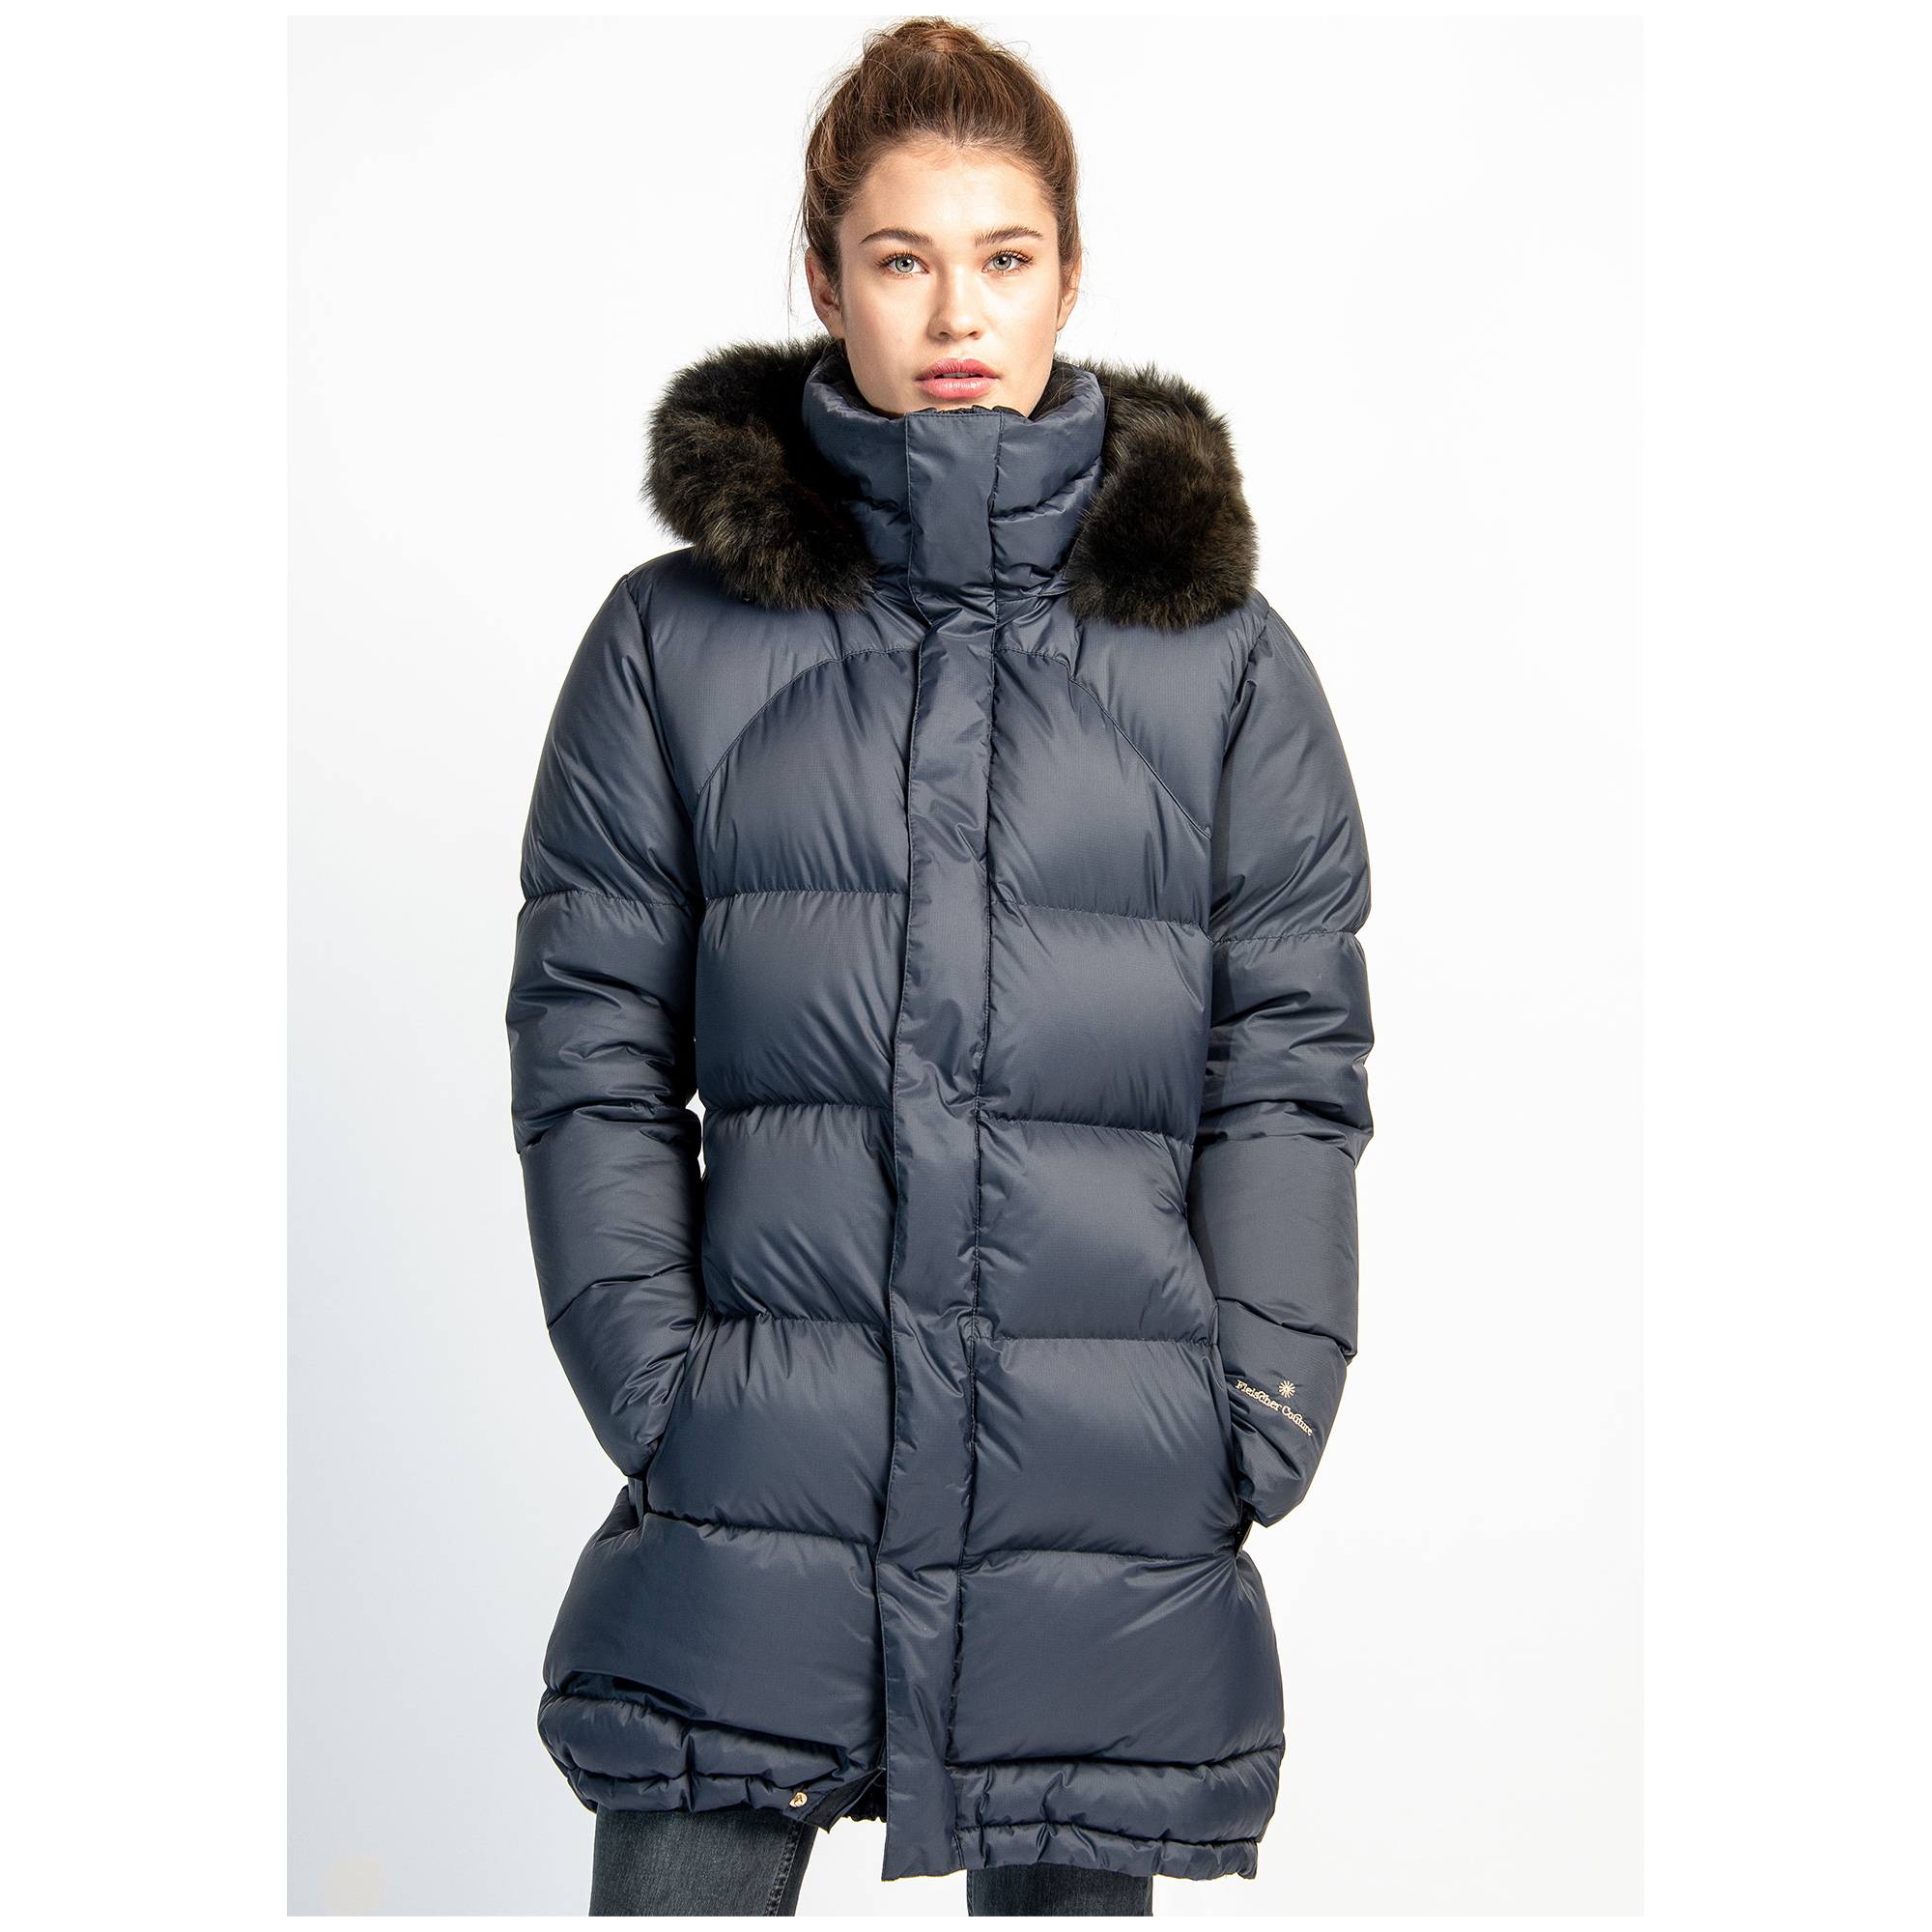 Fleischer Polaris Märtha LouiseSonja jacket 1.jpg